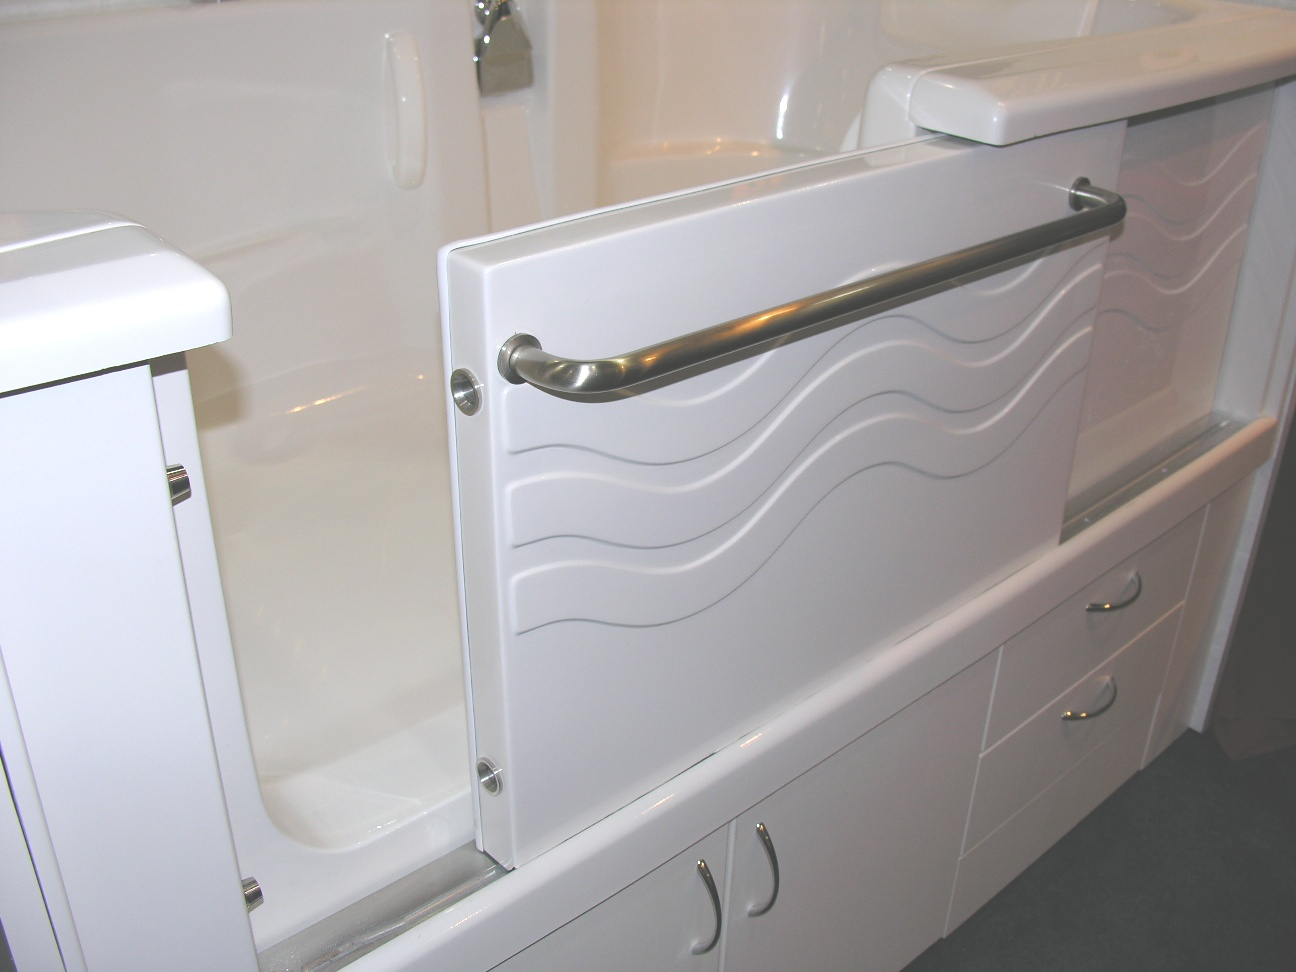 explore tub x bathtub folding doors hinged hardware pivot door aquafold foter with